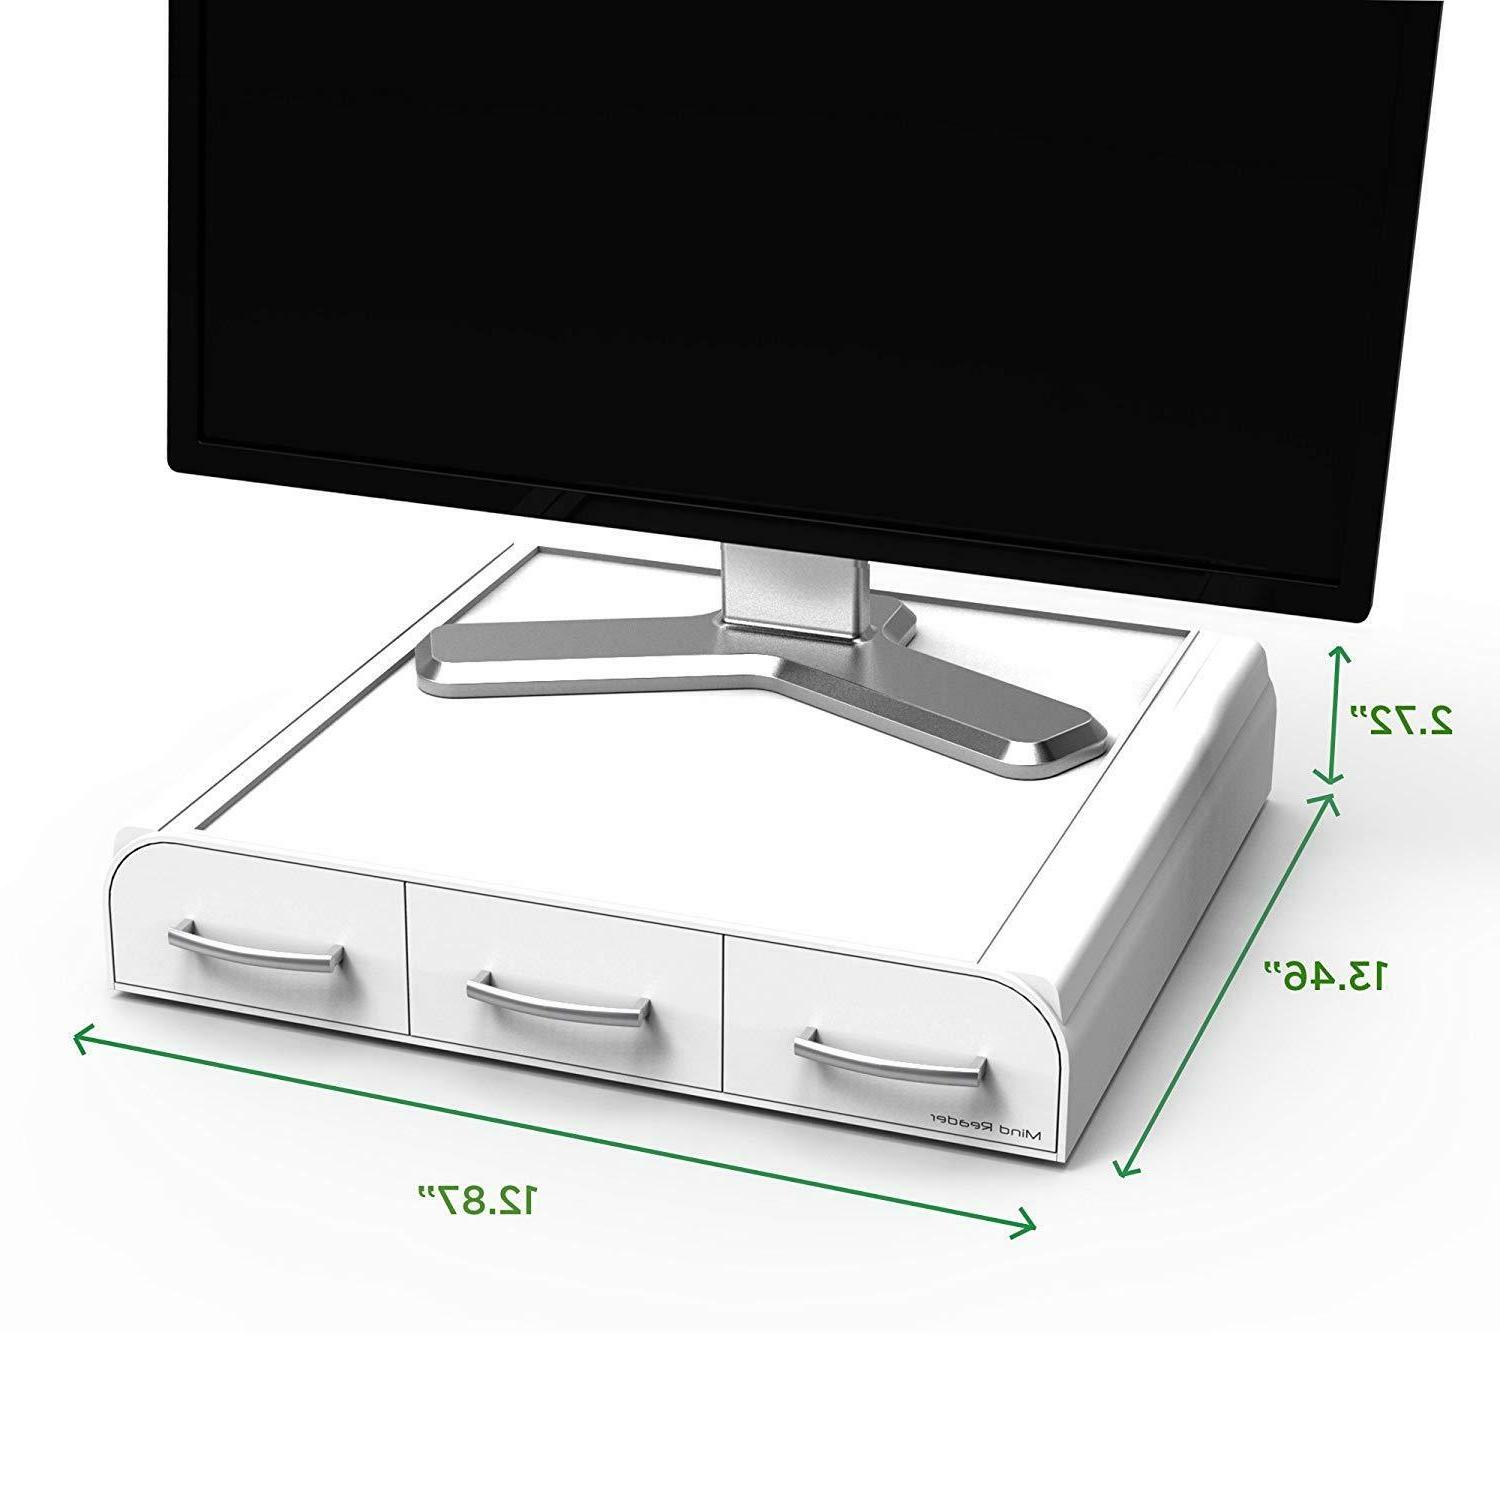 Monitor Stand And Desk Organizer For PC Accessories